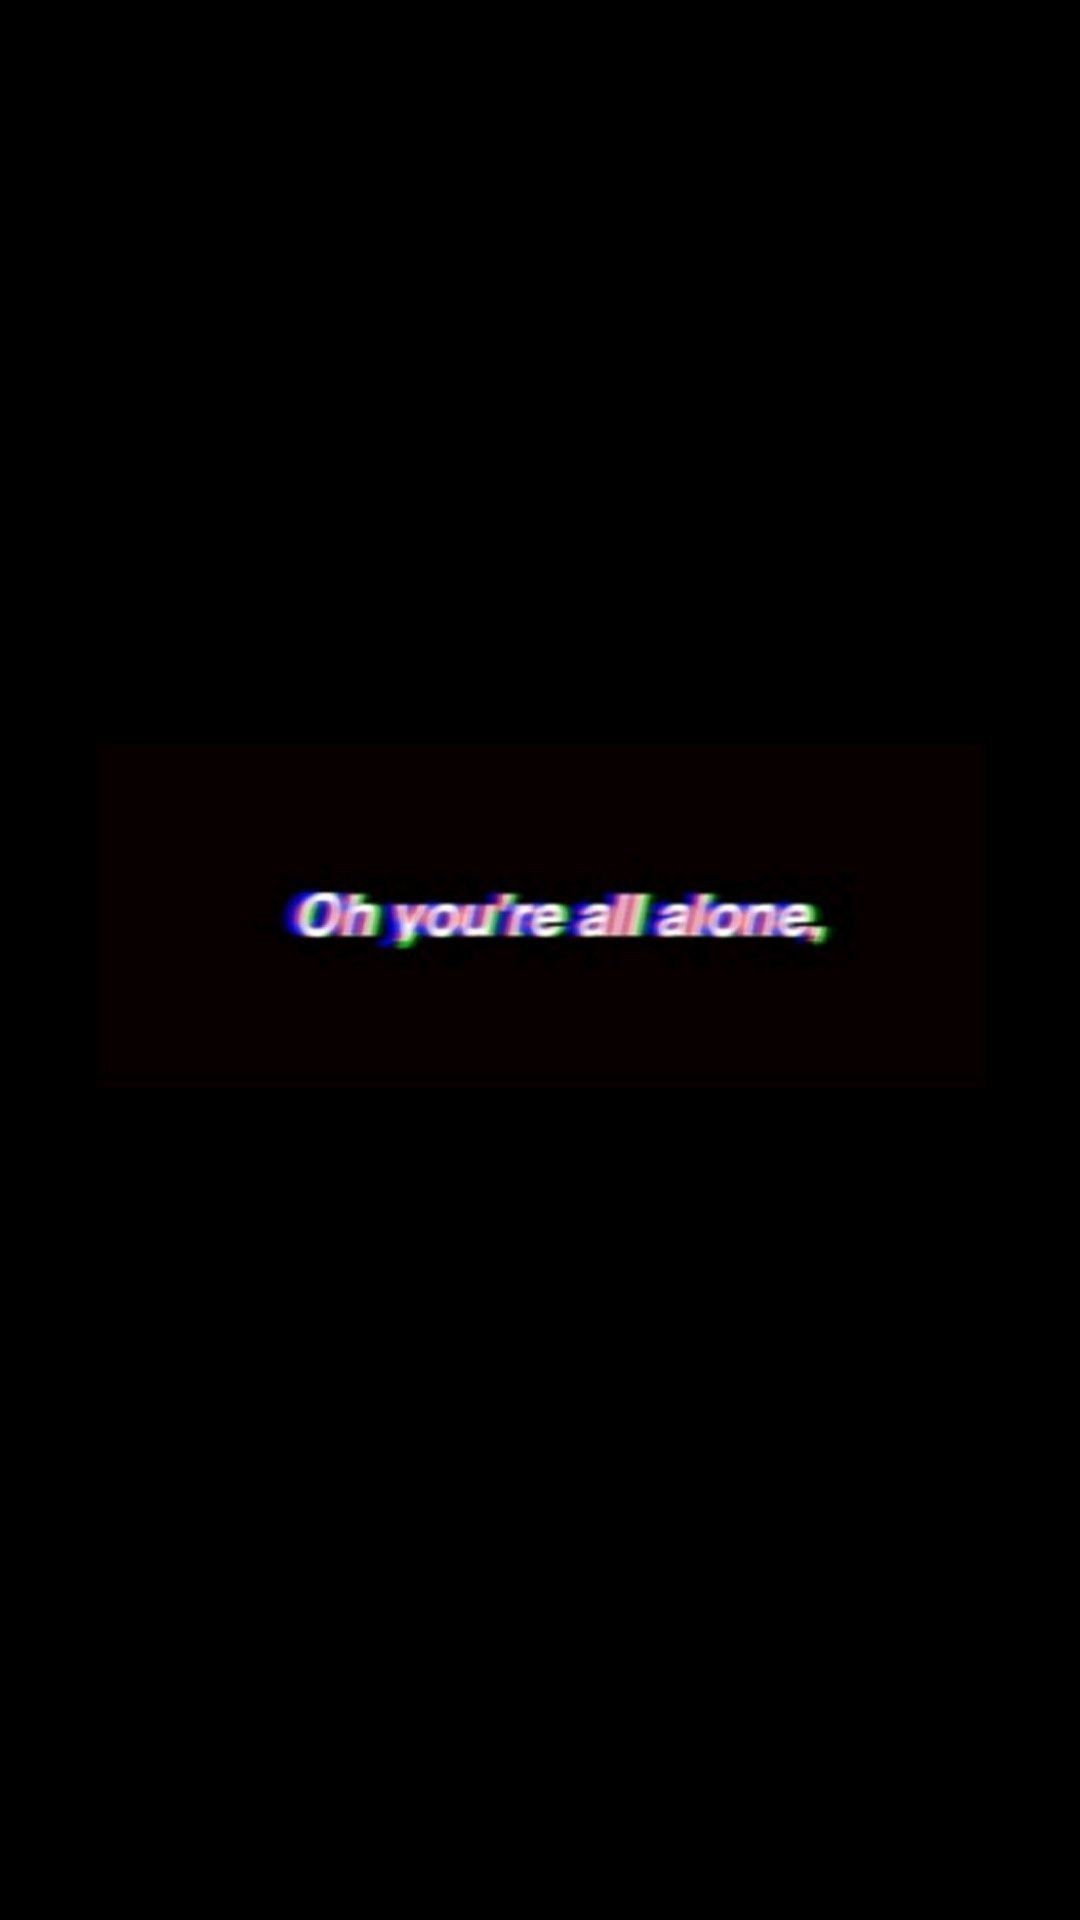 Oh You Re All Alone Vaporwave Aesthetic Wallpaper Quotes